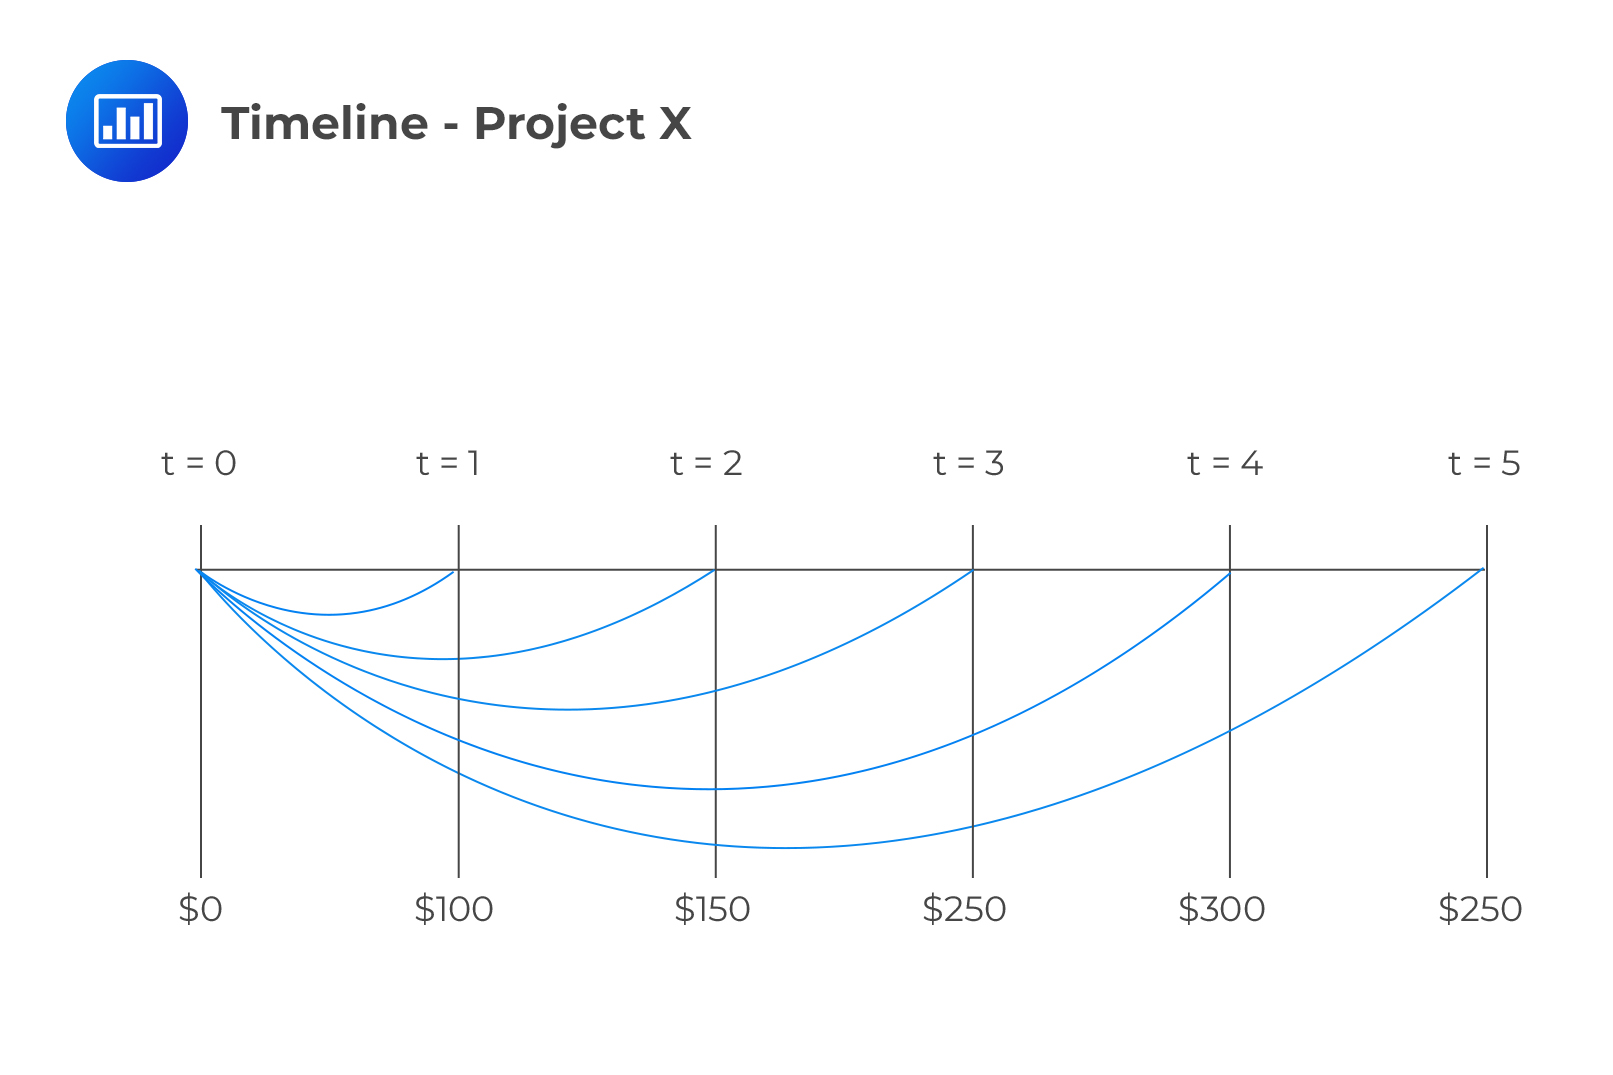 Timeline - Project X